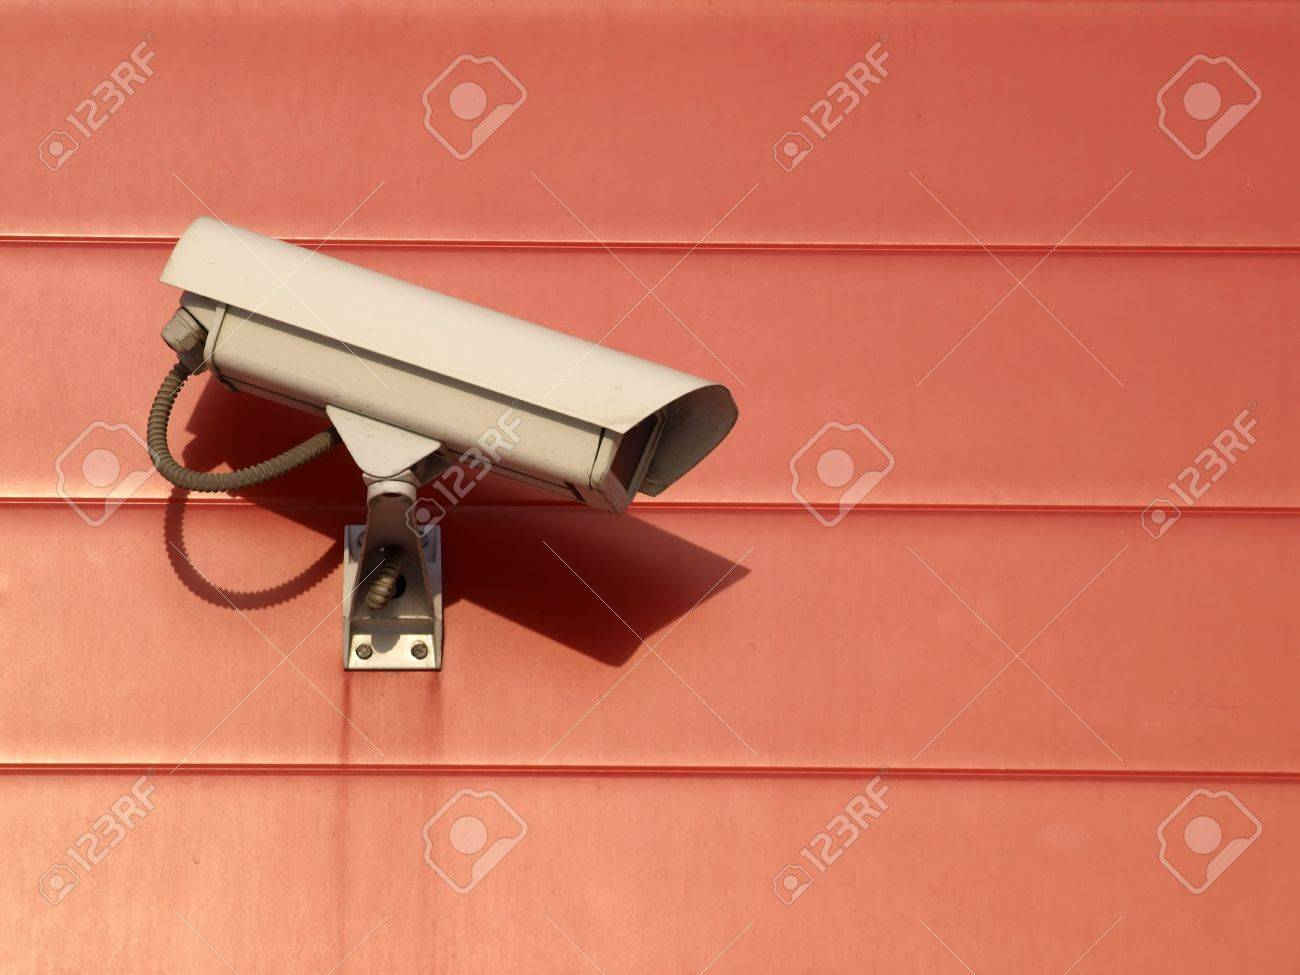 Security camera on the red wall Stock Photo - 12431211